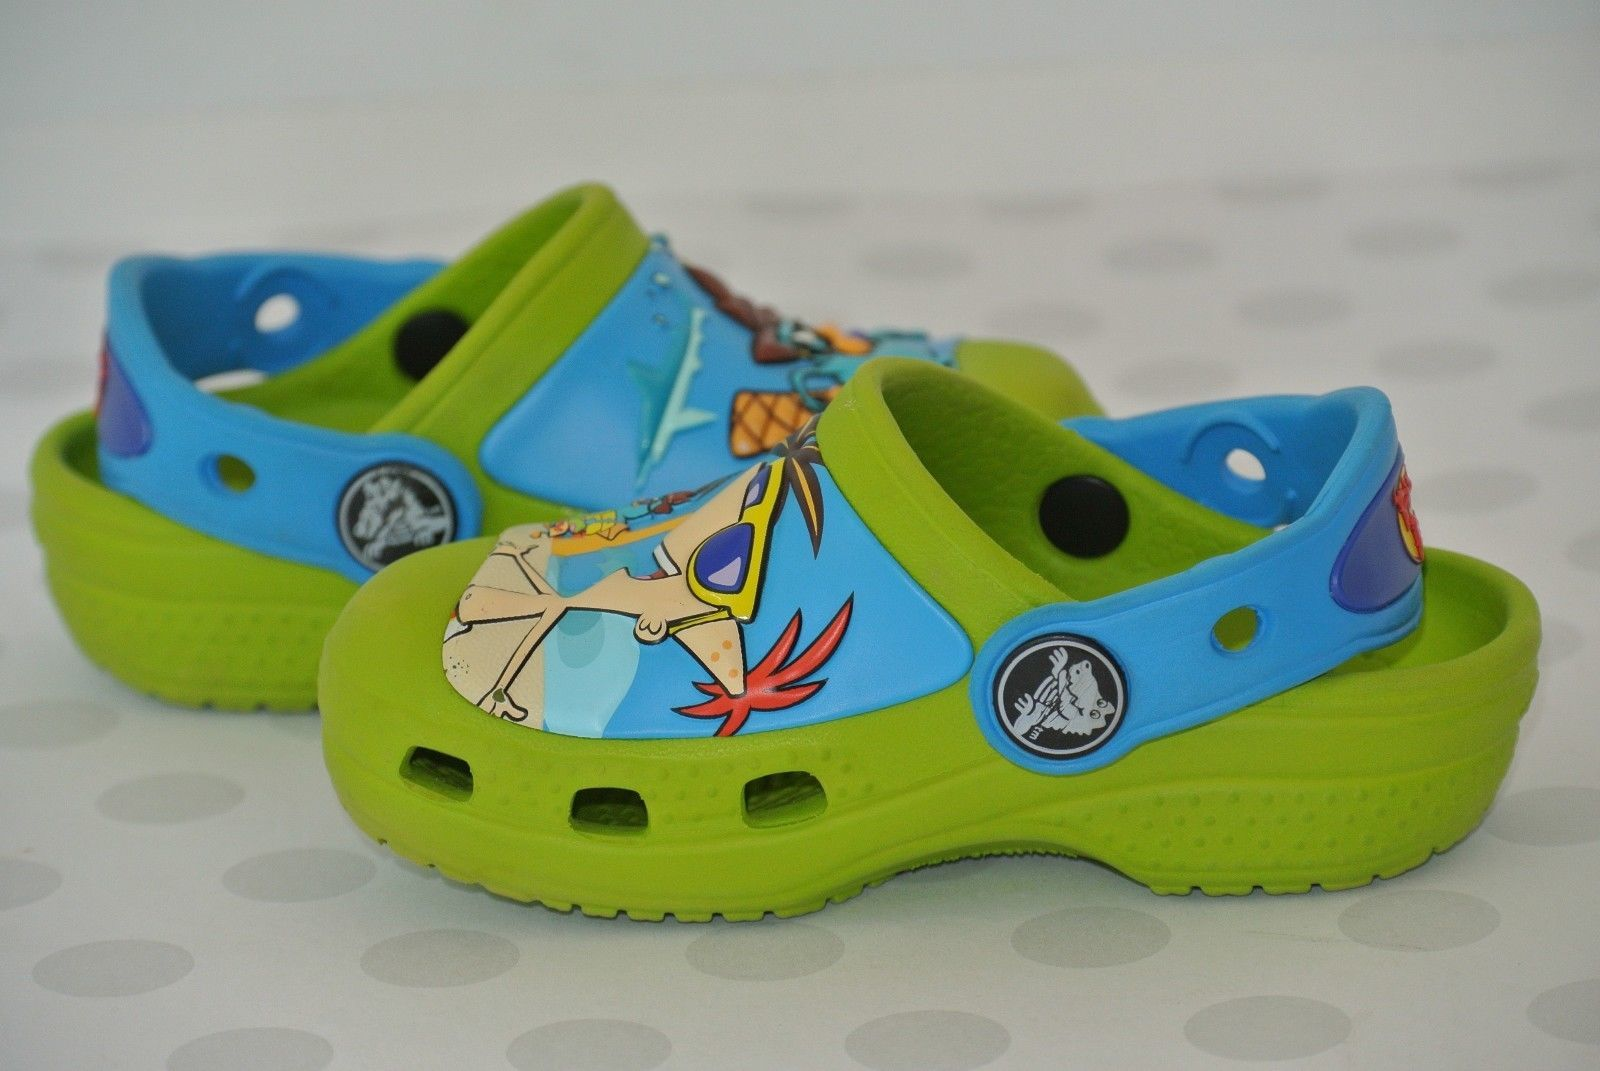 Crocks Disney Phineas Ferb Green Blue Sz 4-5 Washable Water Sandals Clogs NICE!!